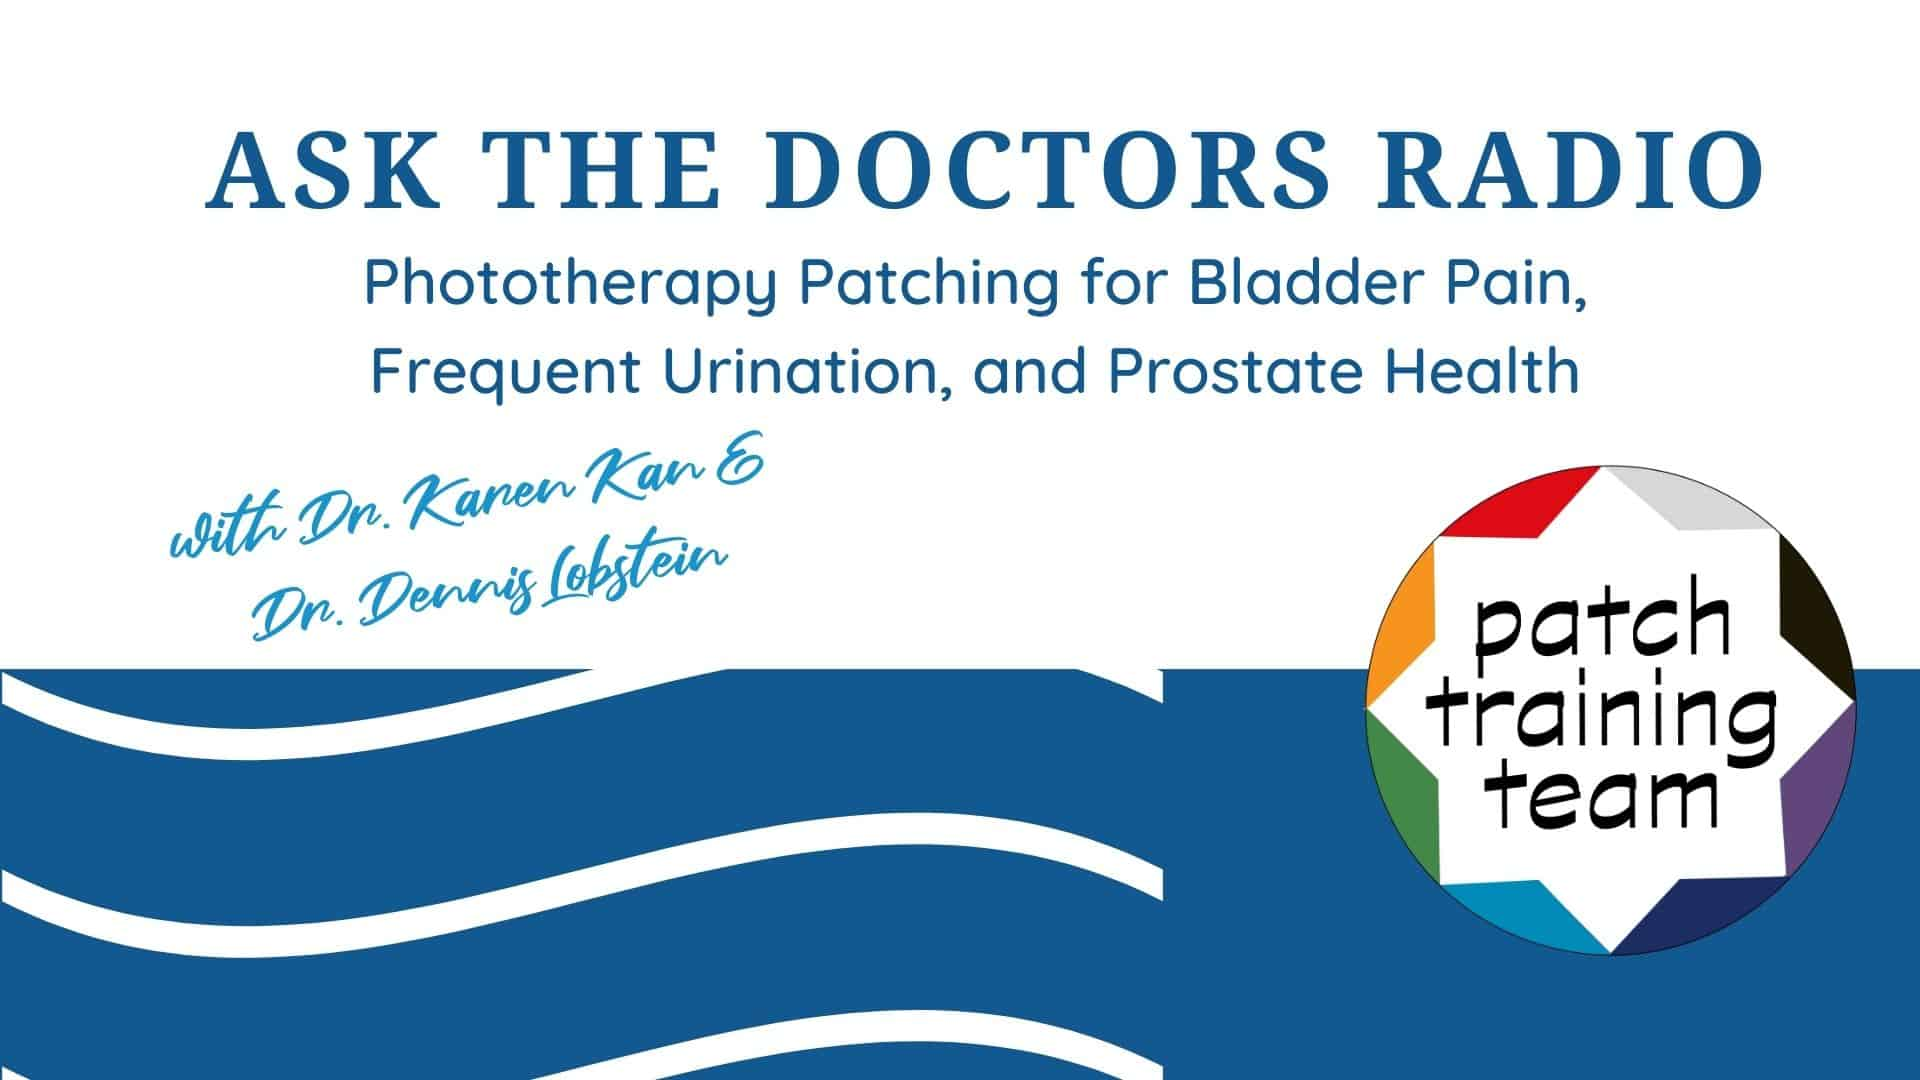 Ask-The-Doctors-Radio-Phototherapy-Patching-for-bladder-pain-frequent-urination-prostate-health-with-dr-karen-kan-and-dr-dennis-lobstein-patch-training-team